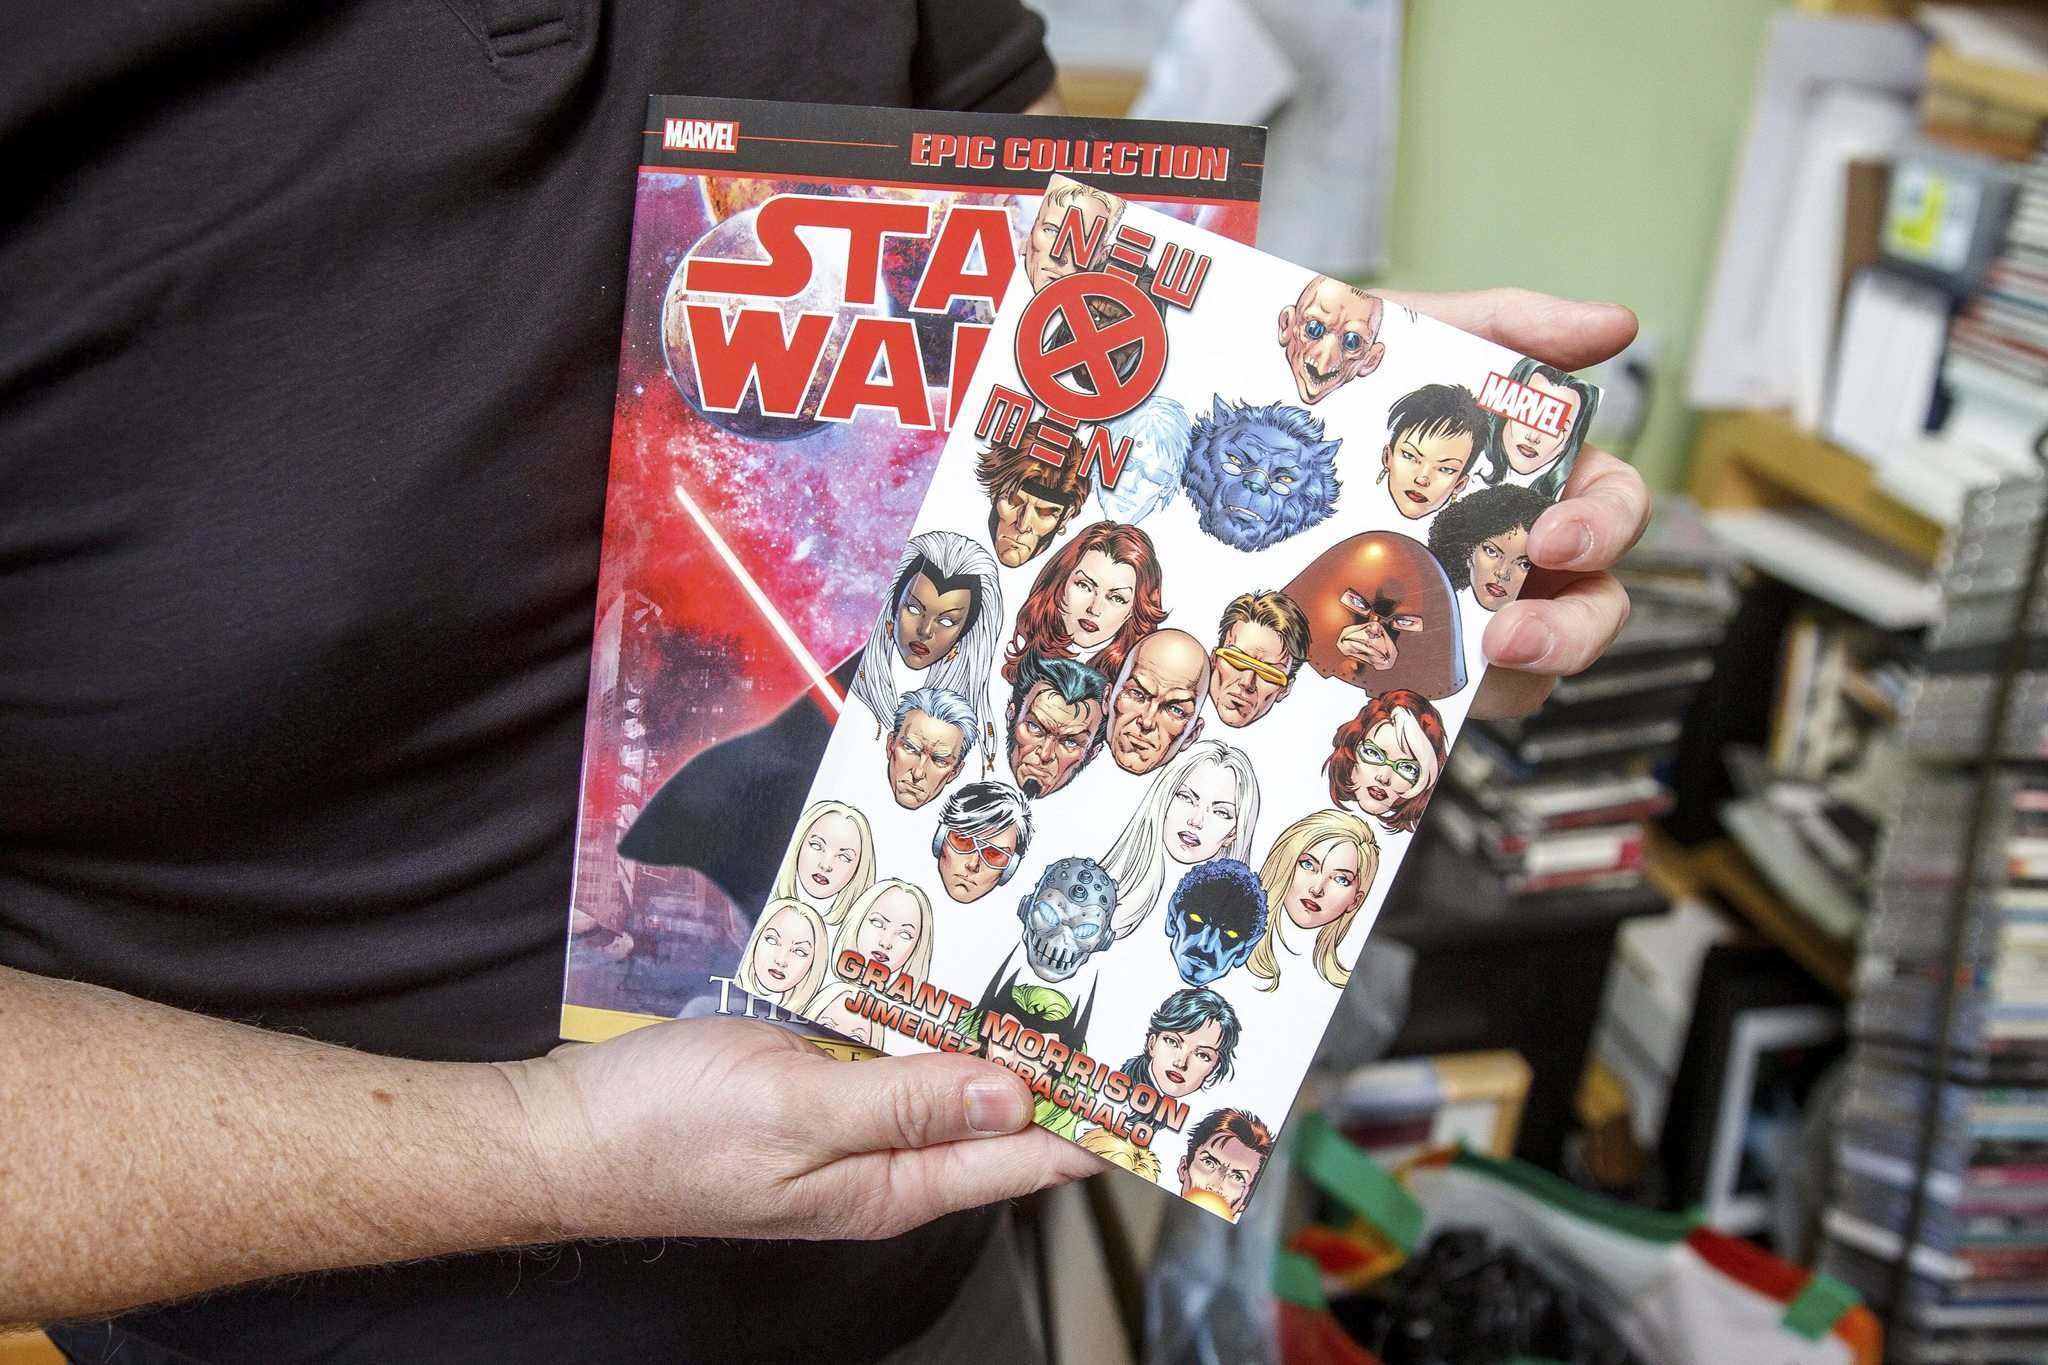 MIKE DEAL / WINNIPEG FREE PRESS</p><p>Chuckry works as a colourist on many major comic-book titles.</p></p>